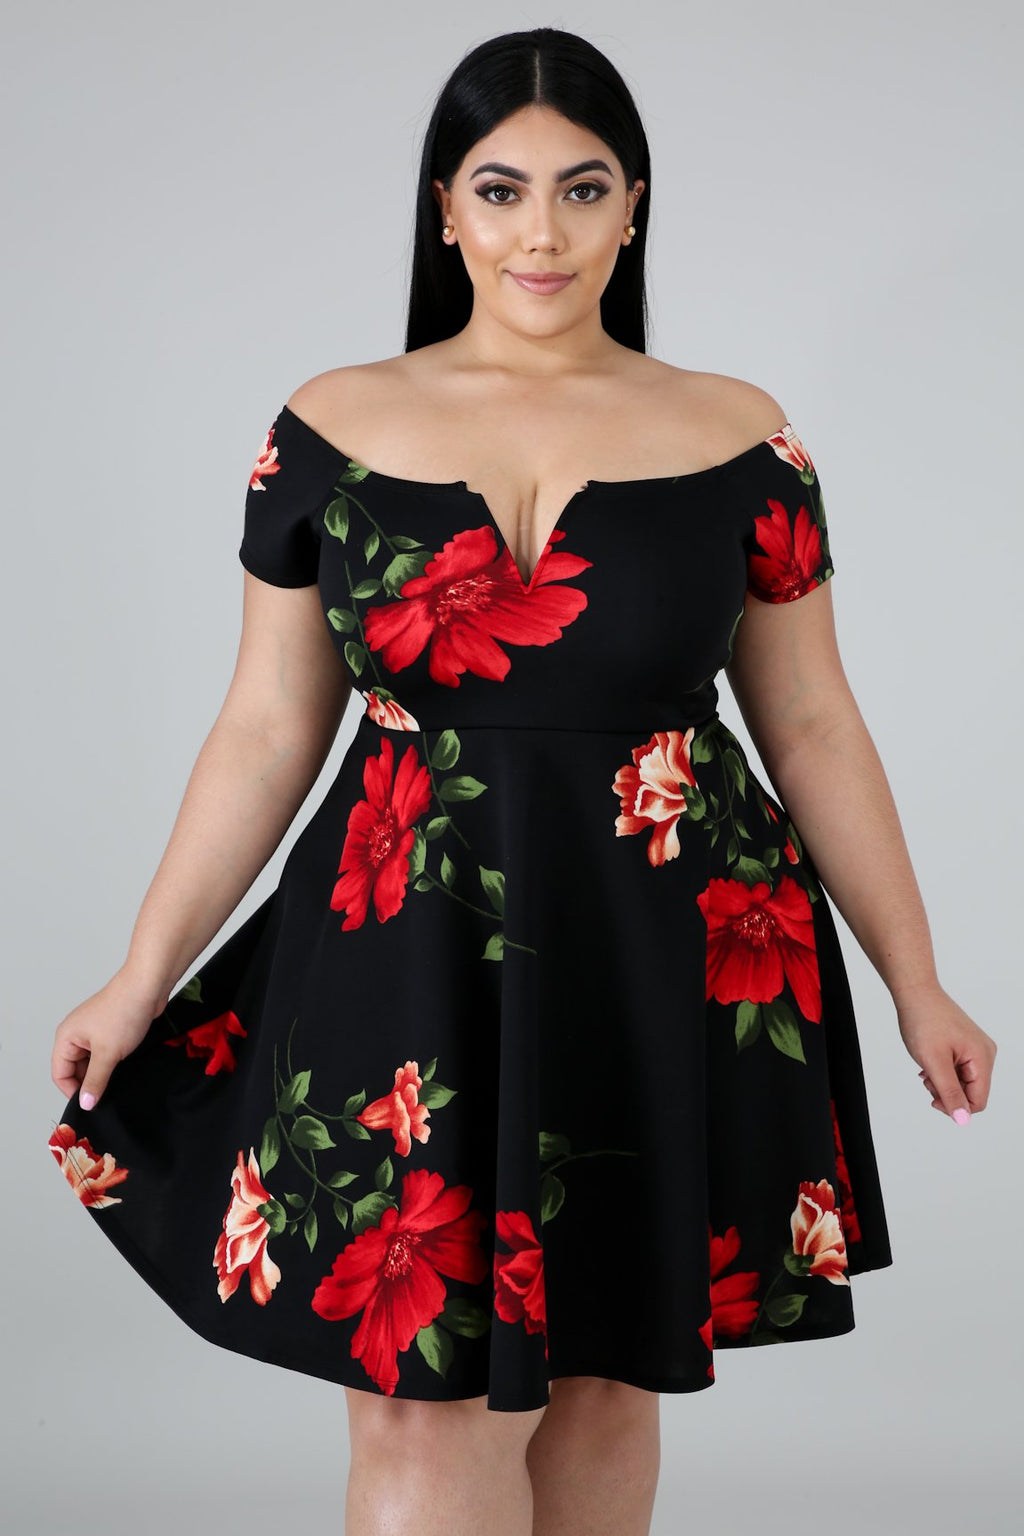 Floral Fun Flare Dress | GitiOnline